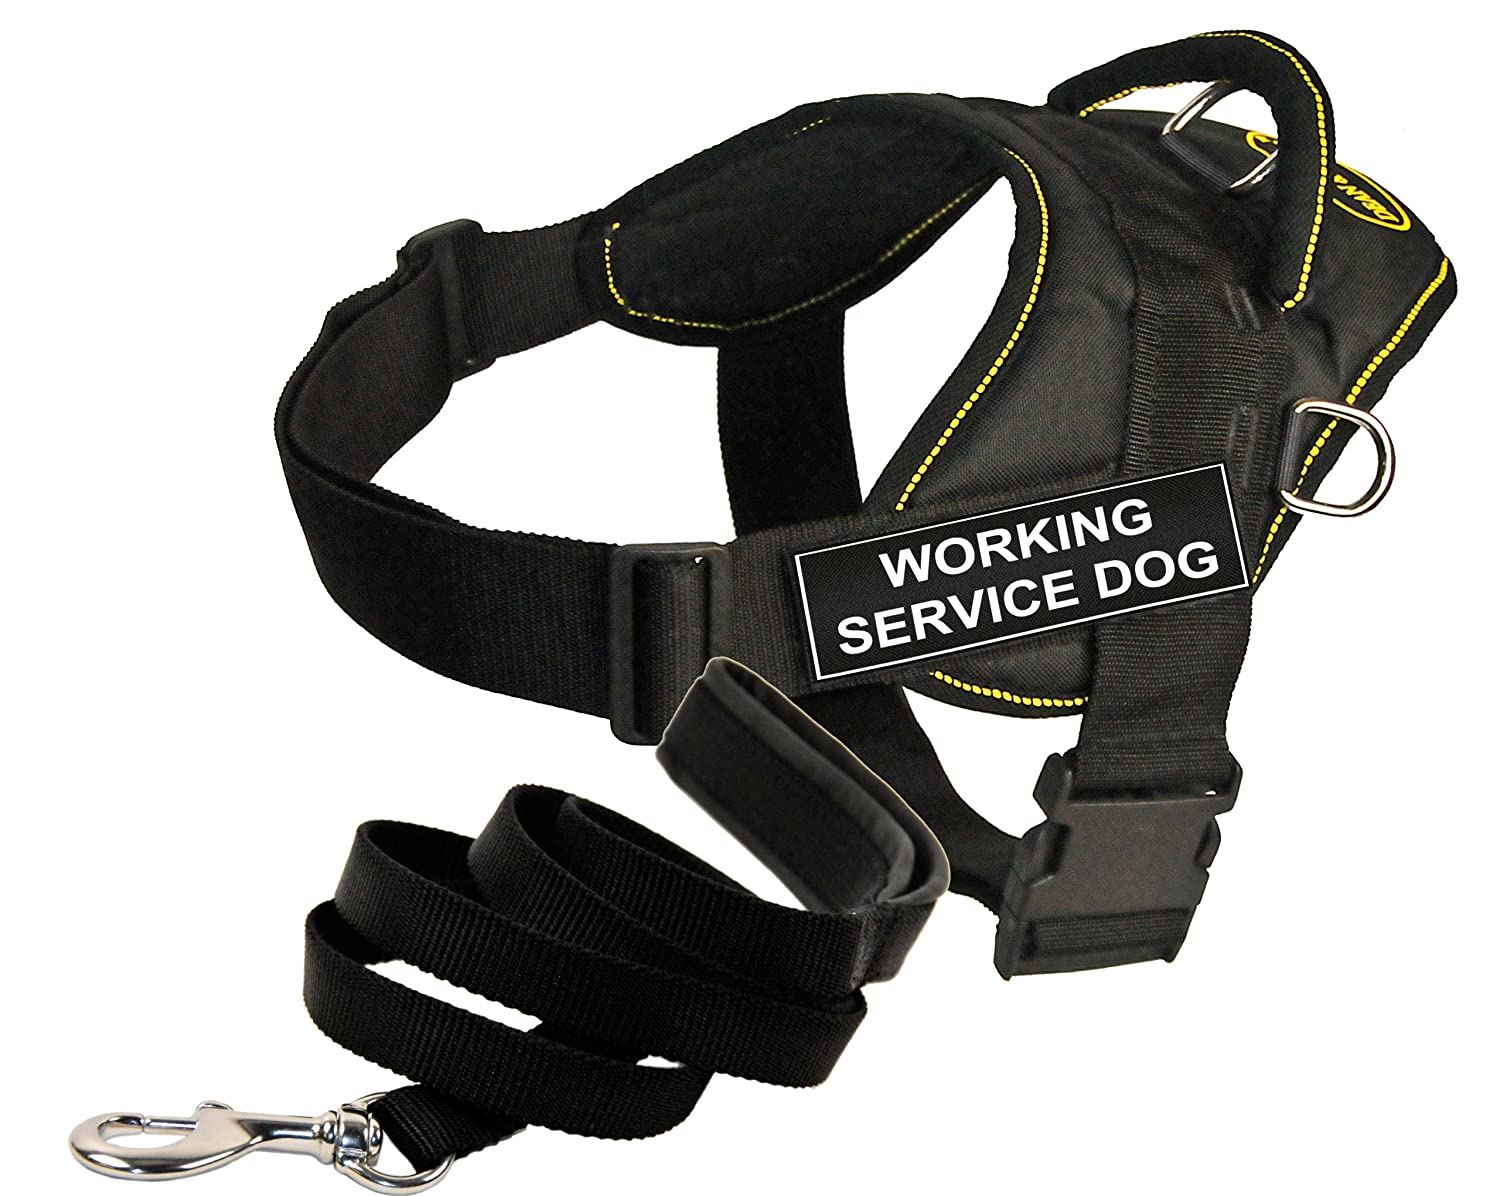 Dean and Tyler Bundle One DT Fun Works  Harness, Working Service Dog, Yellow Trim, XXSmall + One Padded Puppy  Leash, 6 FT Stainless Snap Black